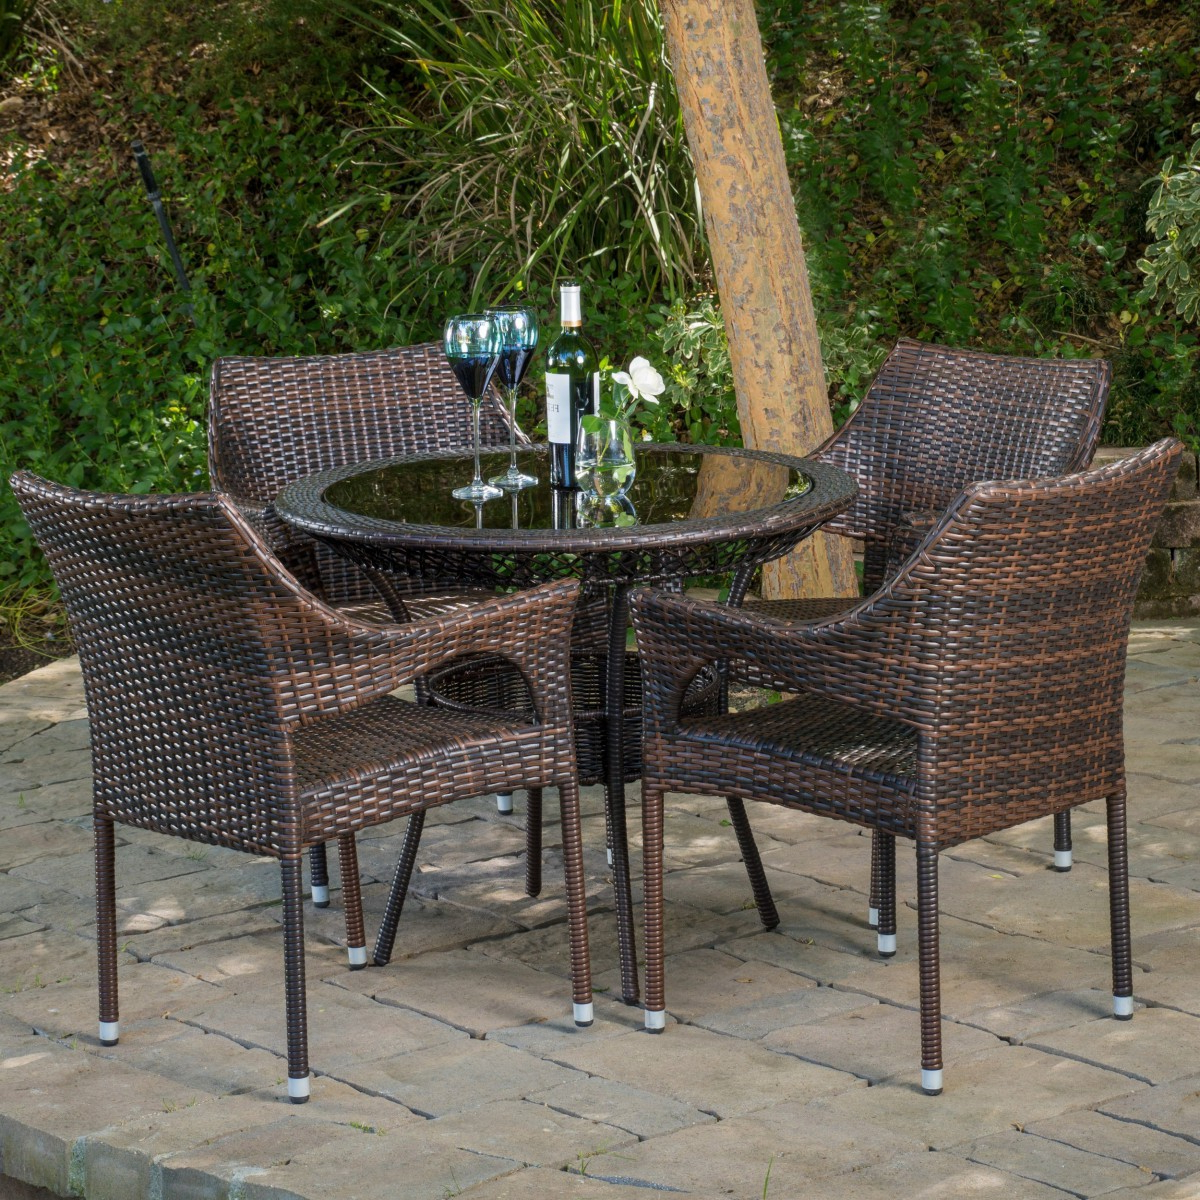 Most Recent Delmar 5 Piece Dining Sets In Del Mar Wicker 5 Piece Outdoor Dining Set With 34Quot Round (View 10 of 25)